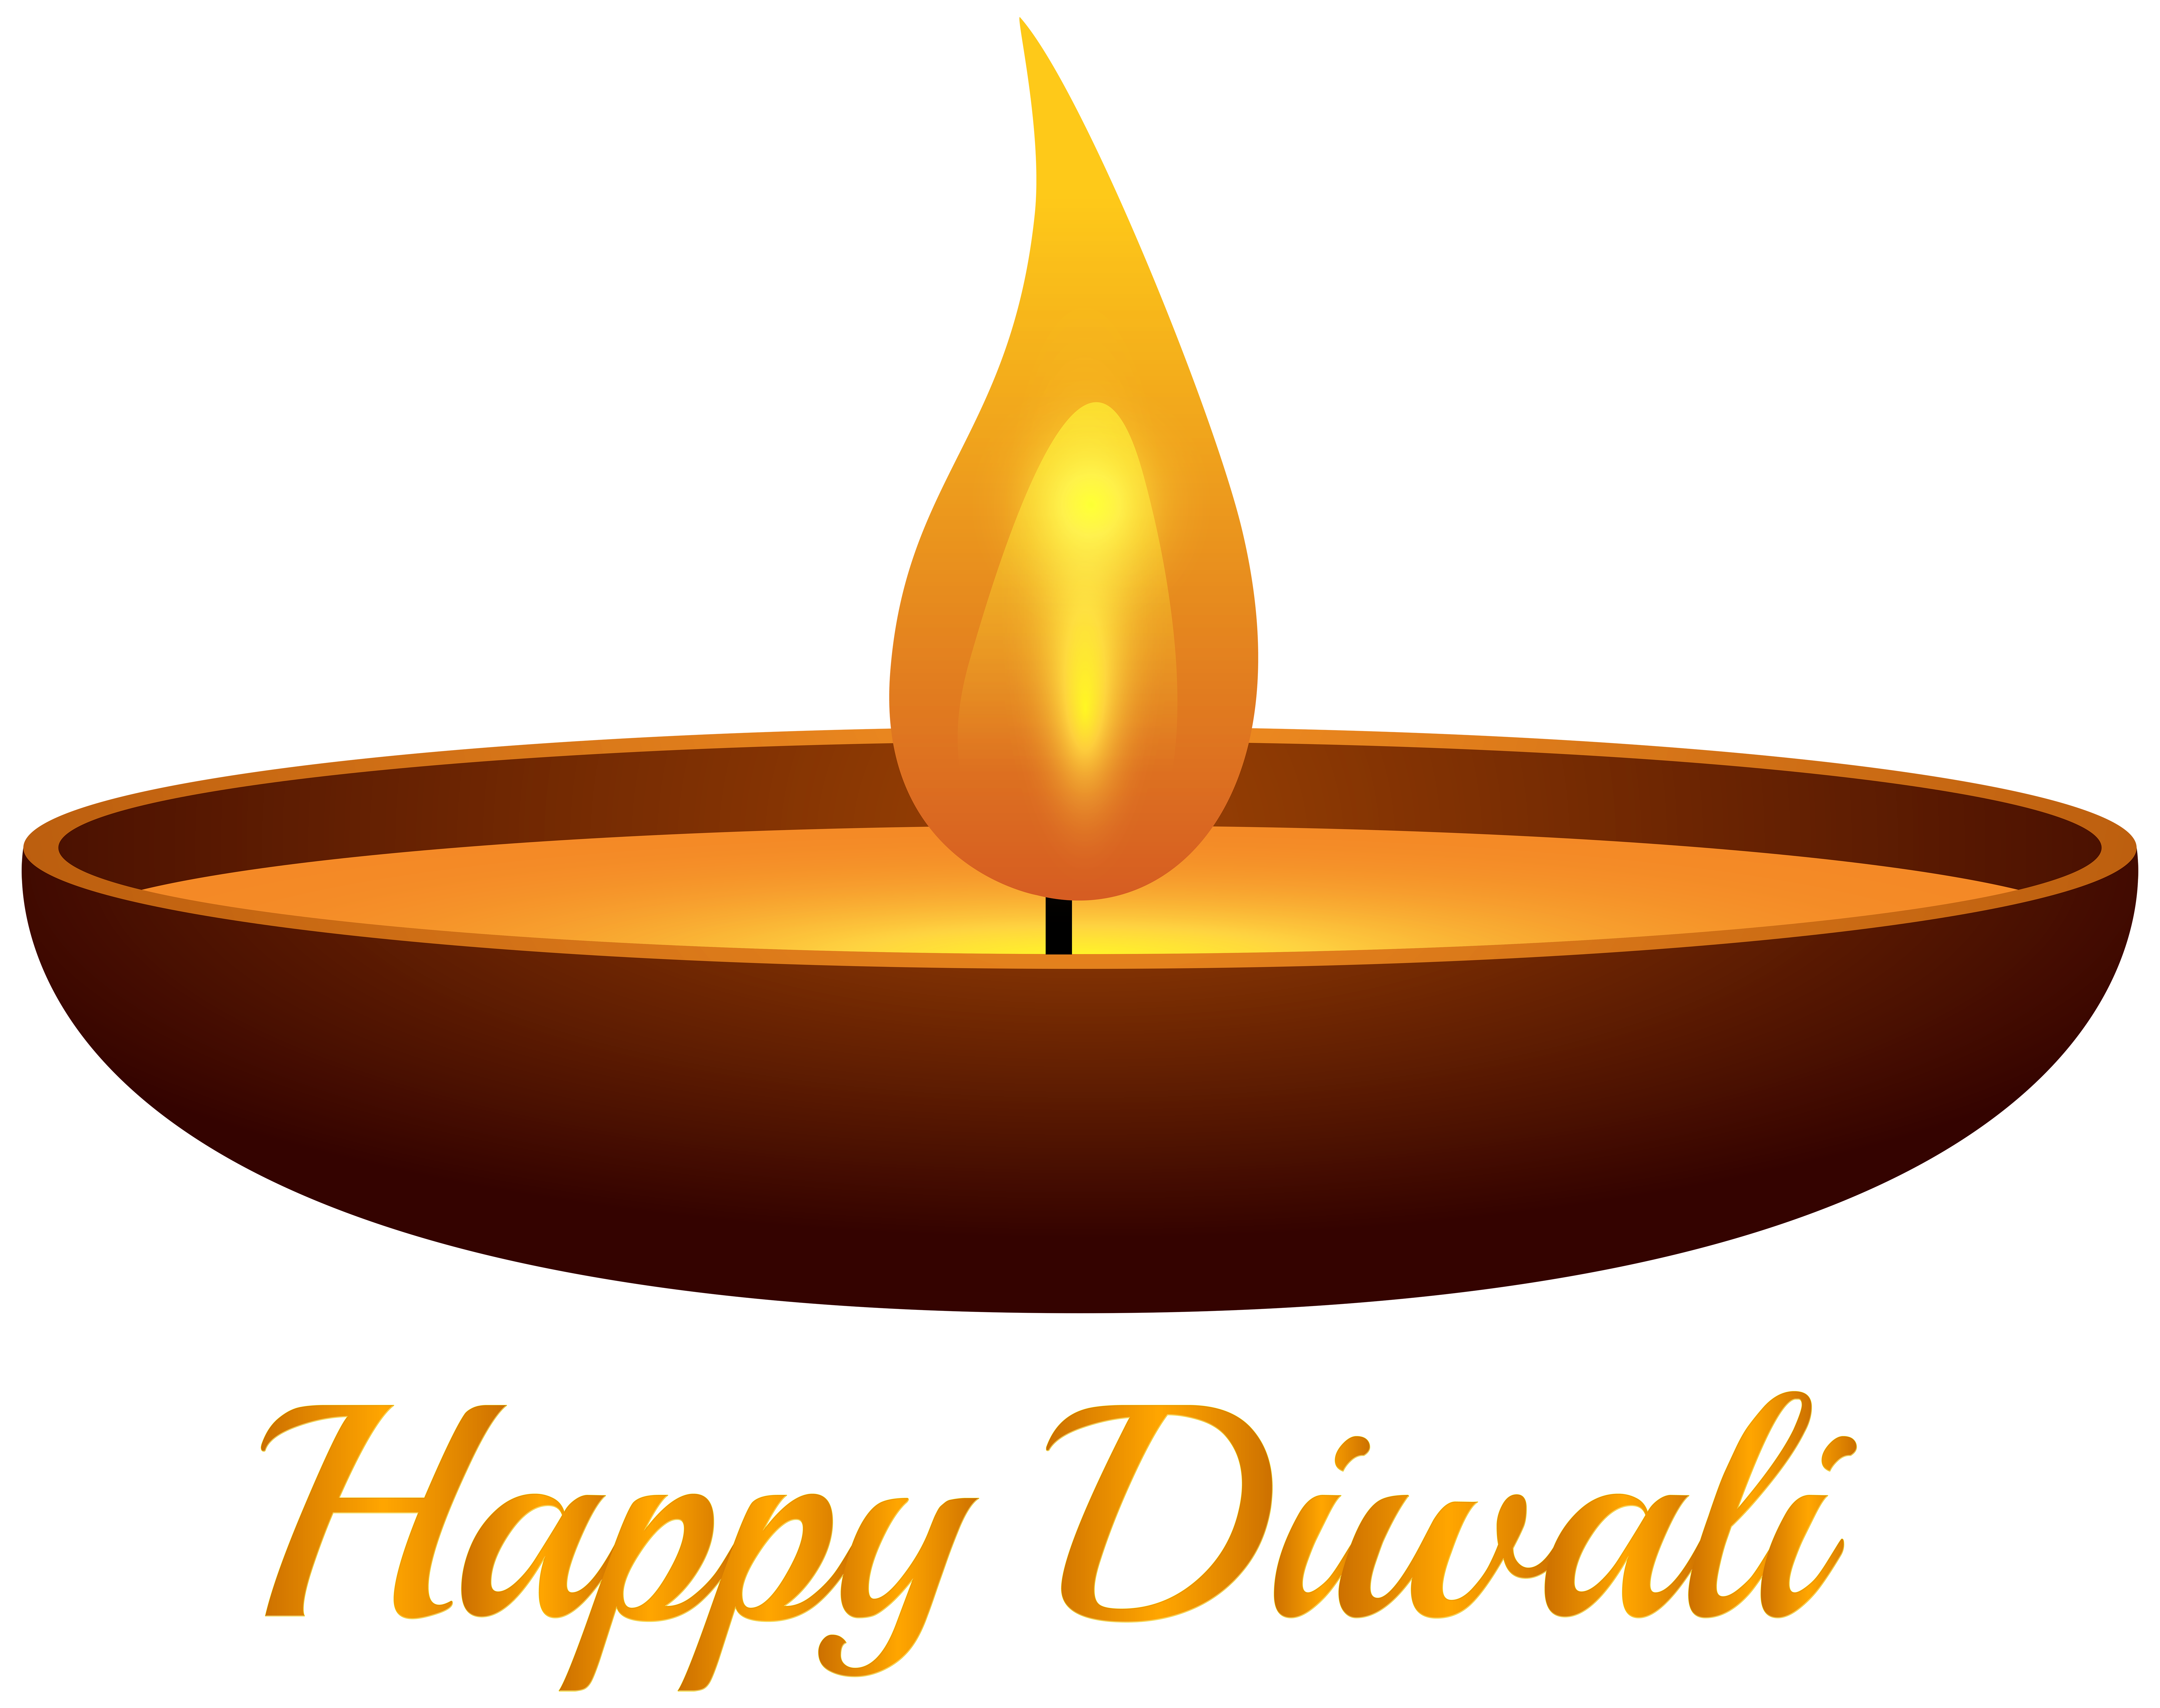 Happy Diwali Candle PNG Clip Art Image | Gallery Yopriceville ... for Diwali Oil Lamp Png  83fiz